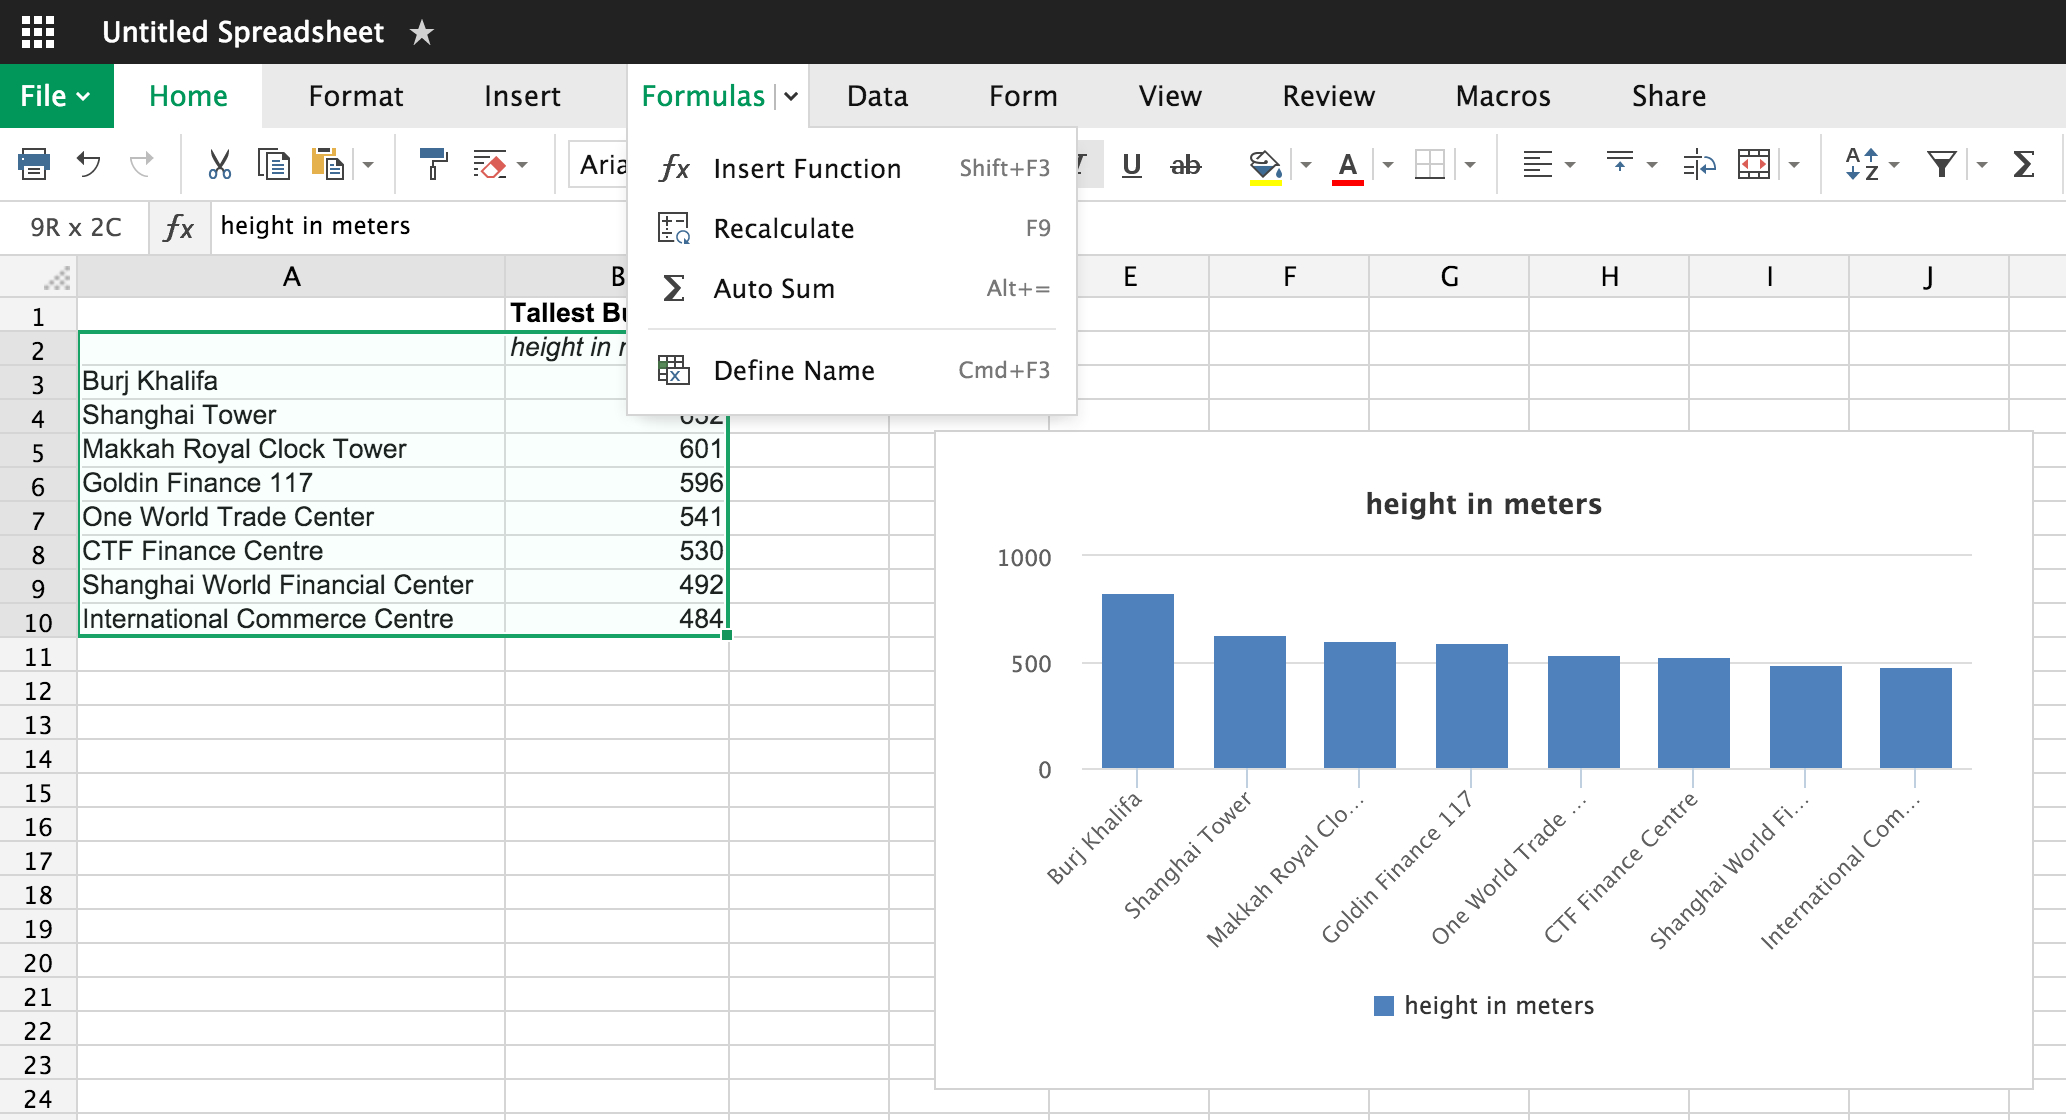 Android Spreadsheet With Macros Intended For From Visicalc To Google Sheets: The 12 Best Spreadsheet Apps Android Spreadsheet With Macros Printable Spreadshee Printable Spreadshee android spreadsheet with macros